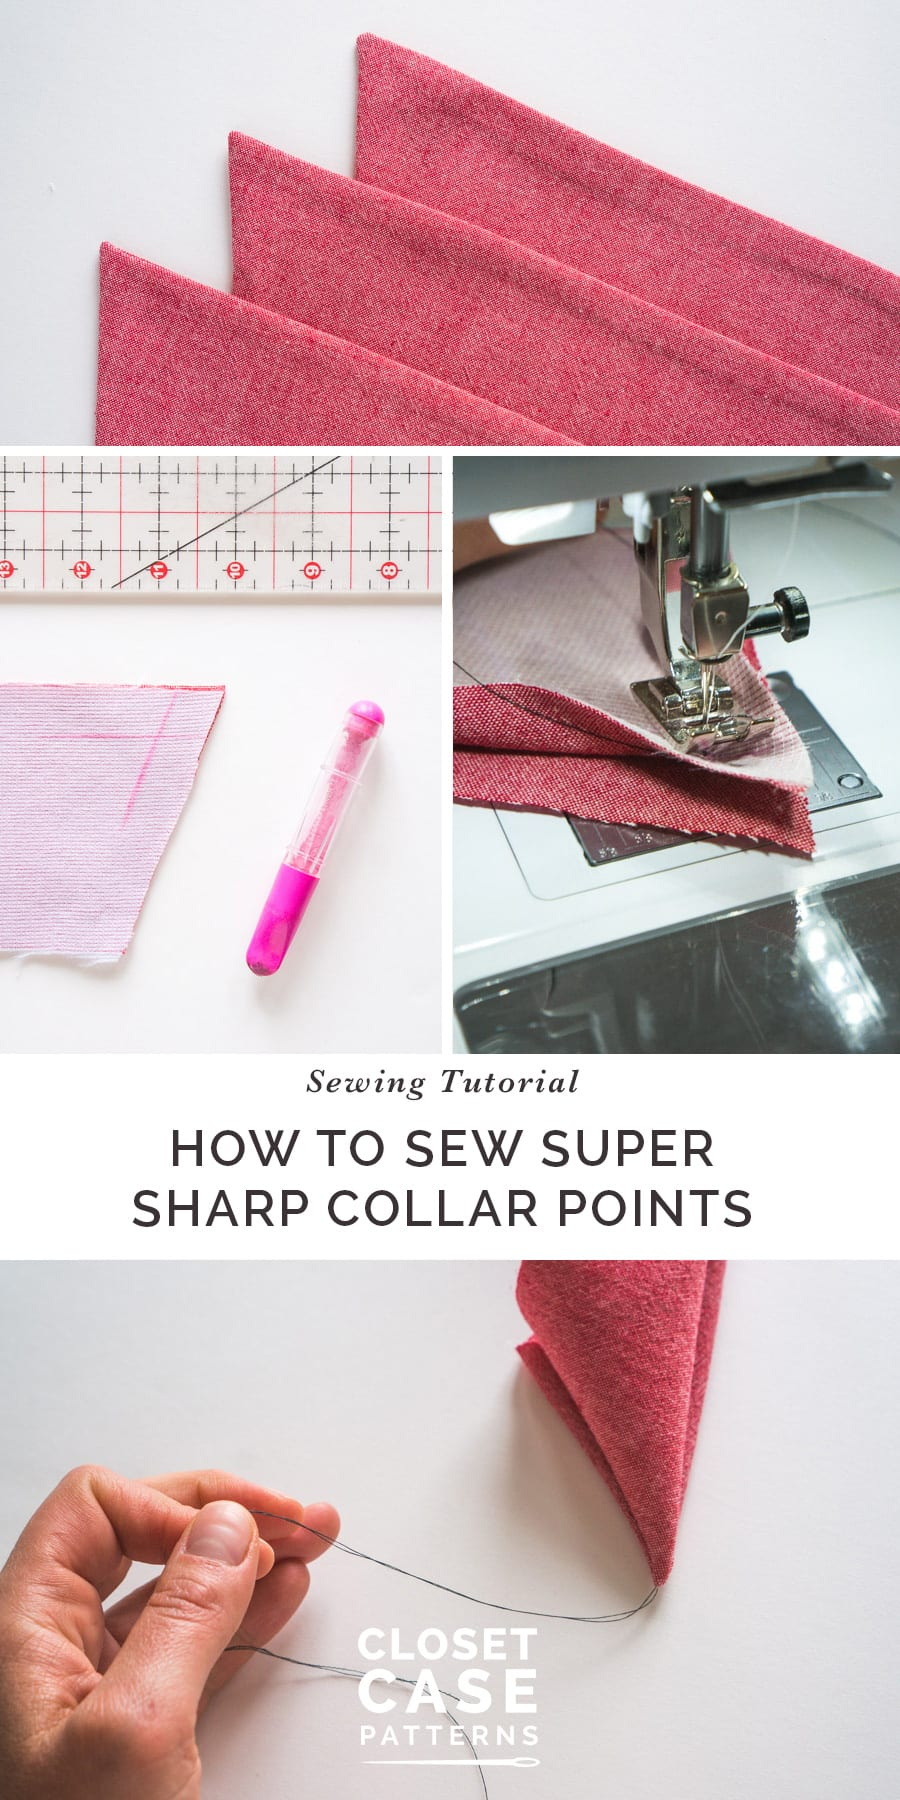 Sewing Sharp Shirt Collar Points Closet Case Patterns Machine Threading Diagram Pinterest How To Sew Super